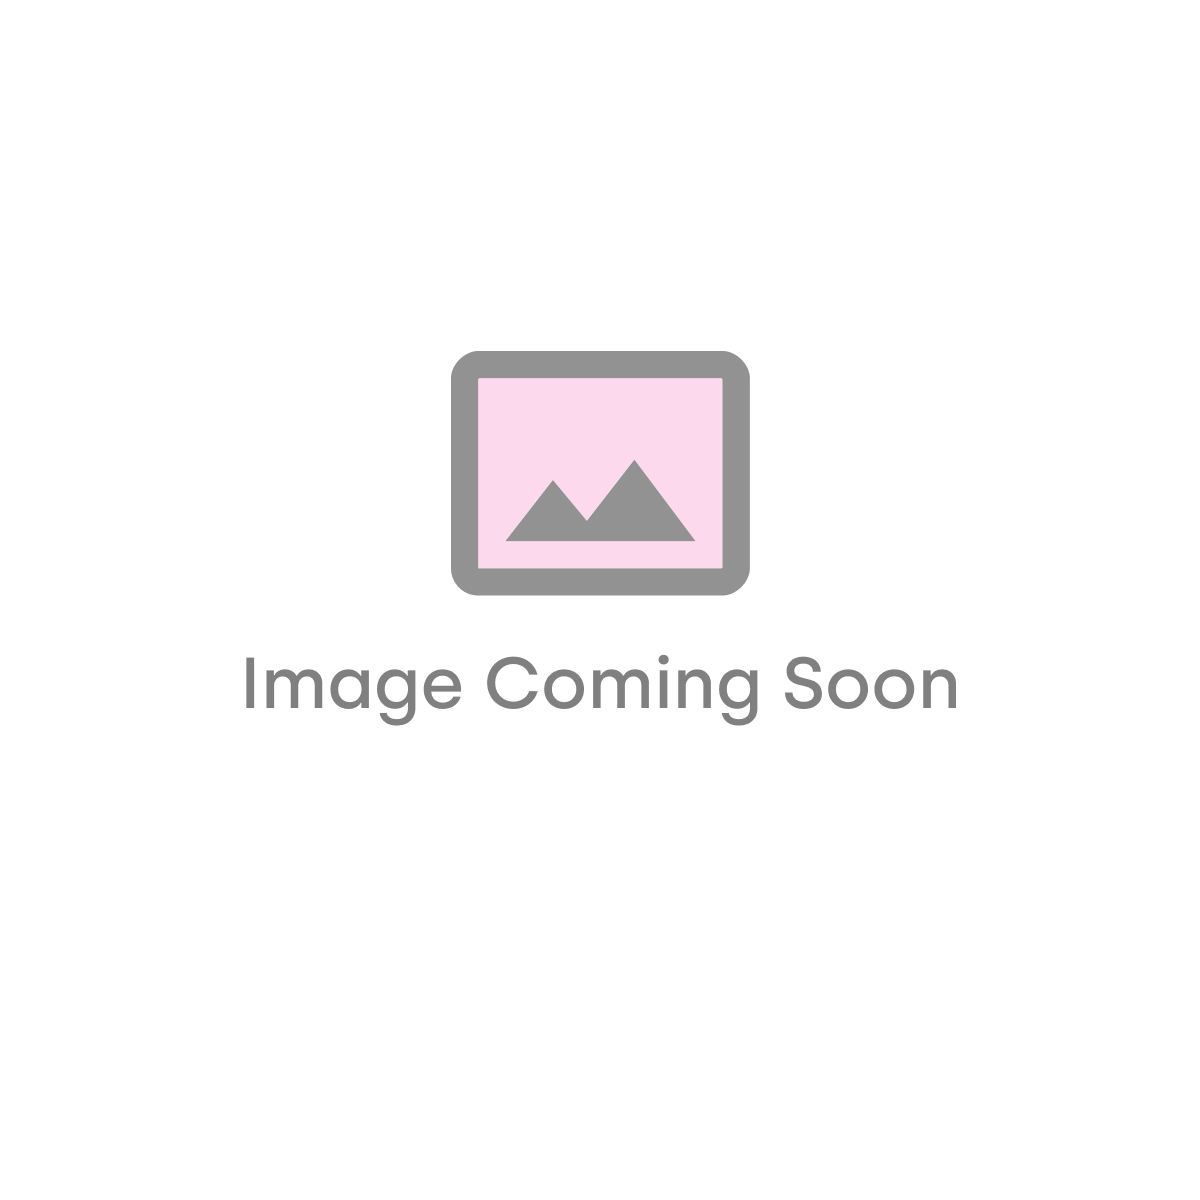 Elect Traditional Style Kitchen Sink Mixer with Swivel Spout & Single Lever - Brushed Copper Finish (19621)